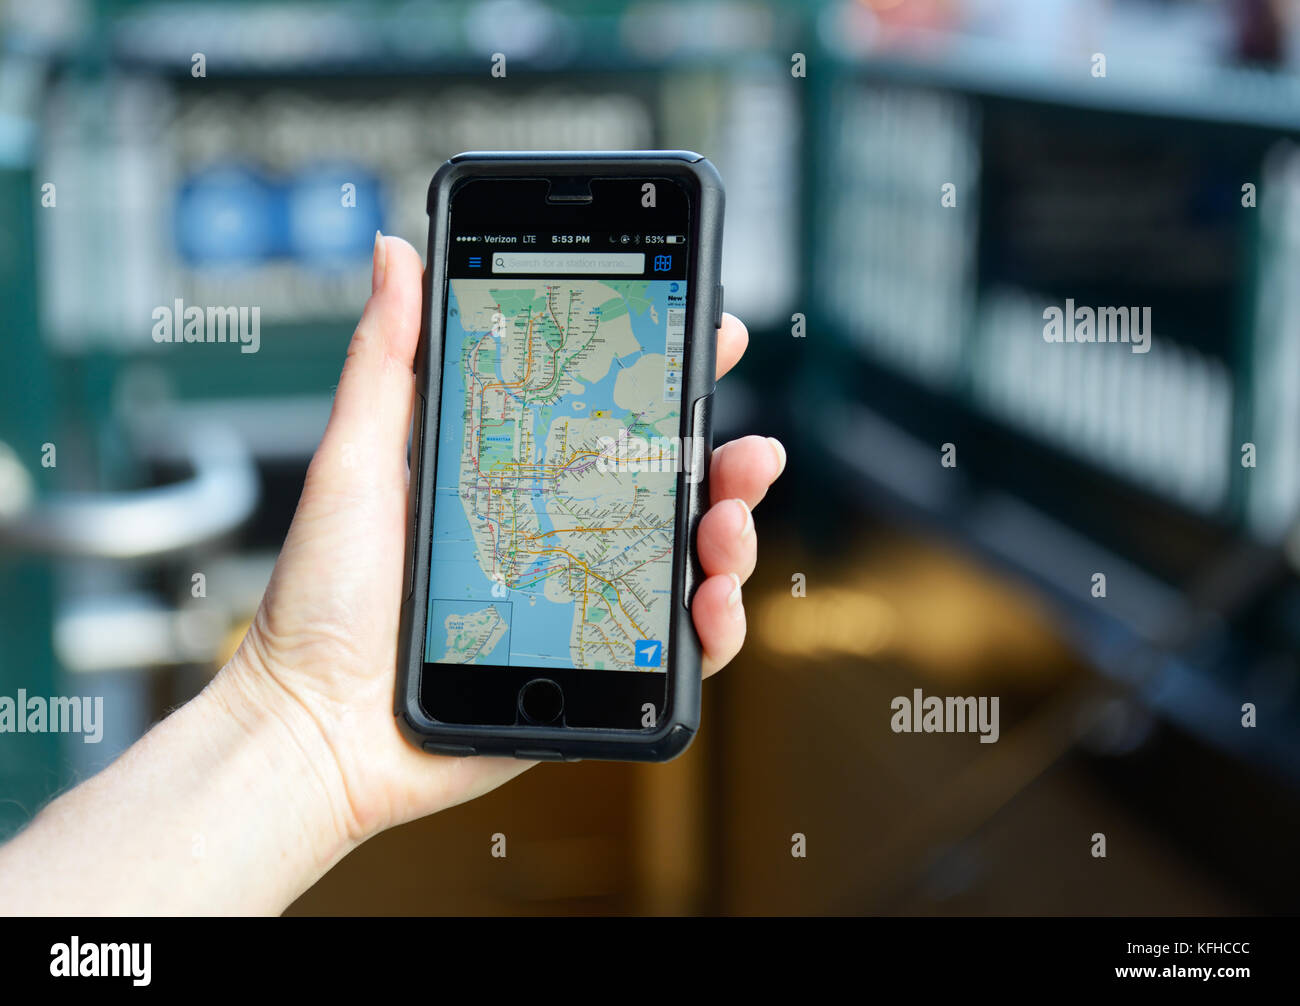 Subway map app application on mobile phone, New York City - Stock Image